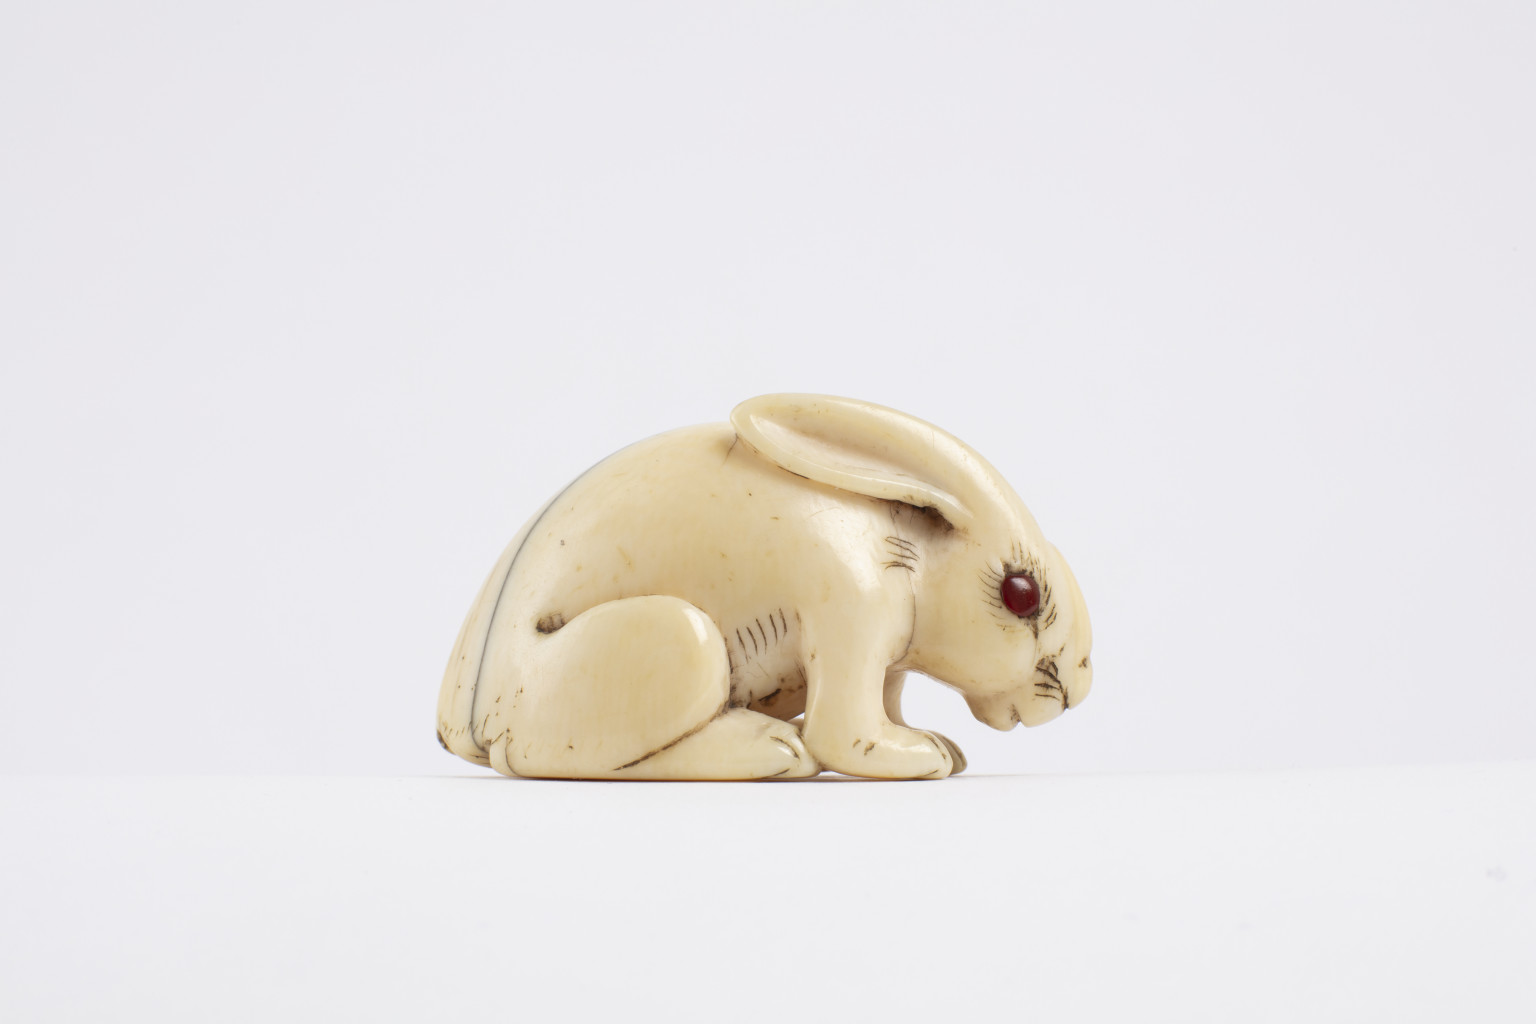 A delicately carved sculpture from Japan called a netsuke